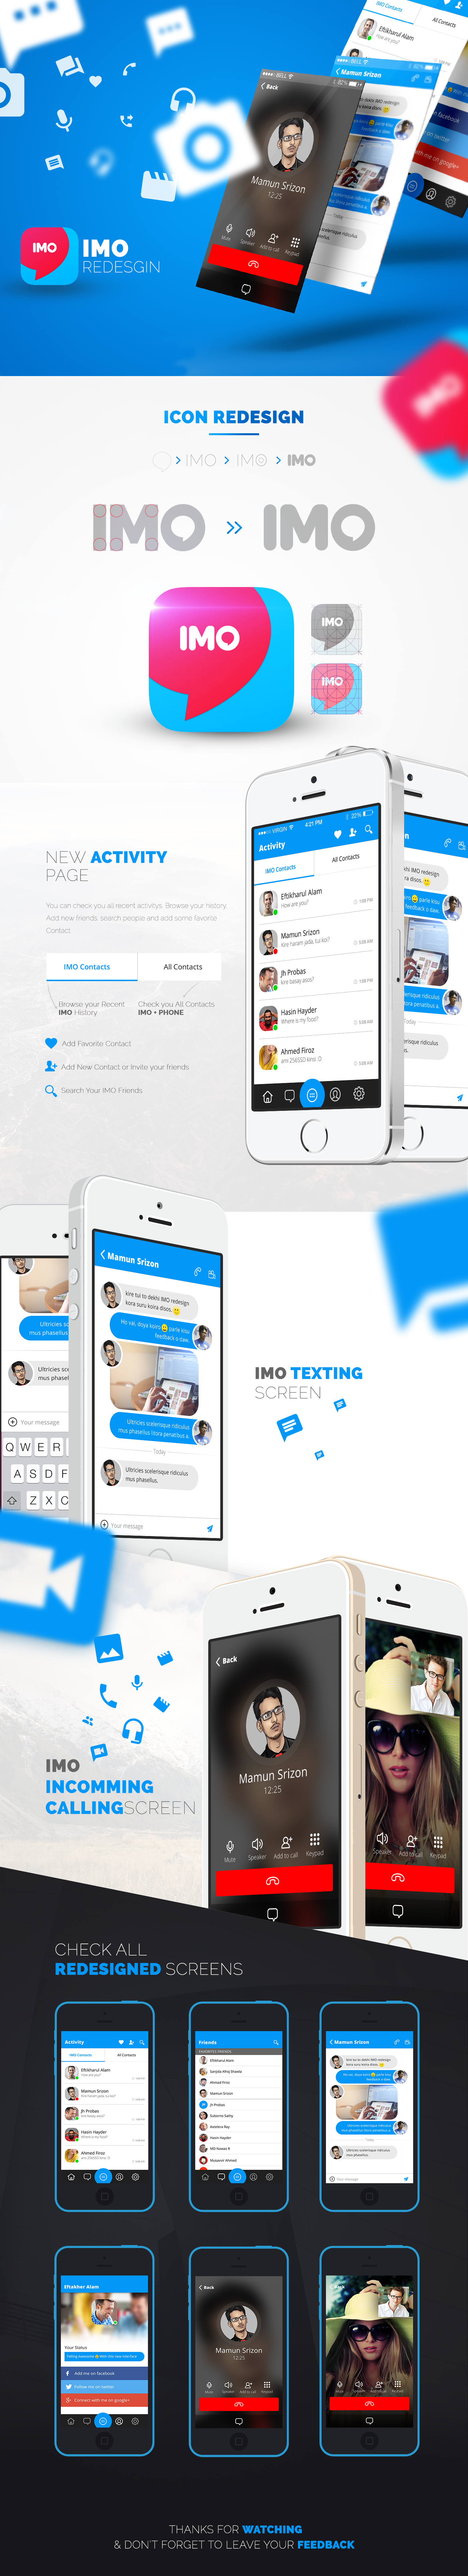 IMO Messenger Redesign on Behance